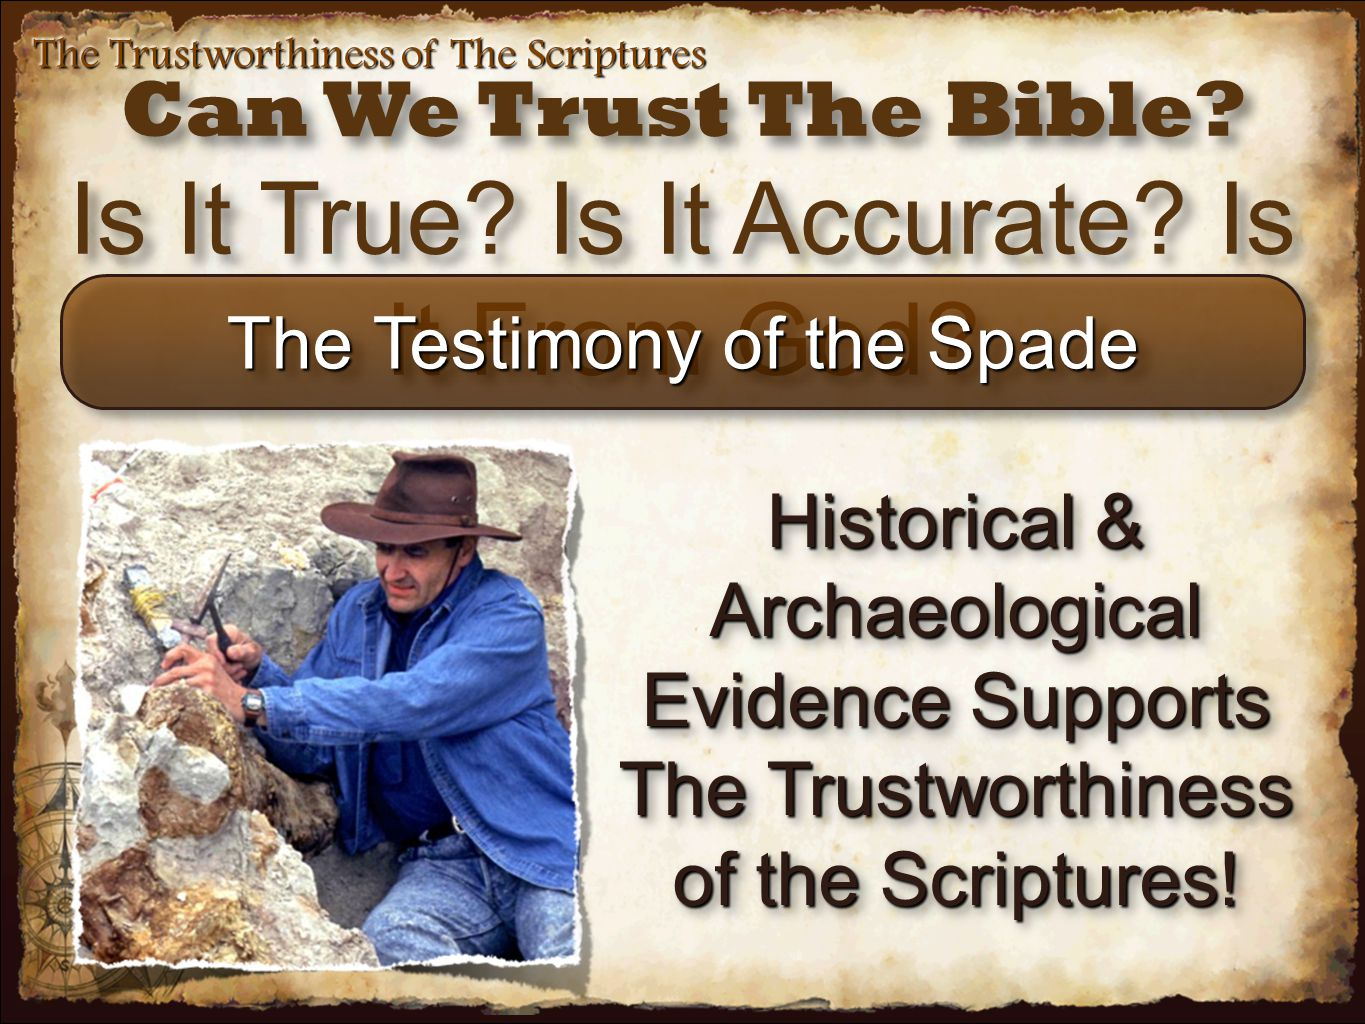 The Trustworthiness of The Scriptures Luke 24:44 (NKJV) 44 Then He said to them, These are the words which I spoke to you while I was still with you, that all things must be fulfilled which were written in the Law of Moses and the Prophets and the Psalms concerning Me. Luke 24:44 (NKJV) 44 Then He said to them, These are the words which I spoke to you while I was still with you, that all things must be fulfilled which were written in the Law of Moses and the Prophets and the Psalms concerning Me. Prophecies Regarding Jesus